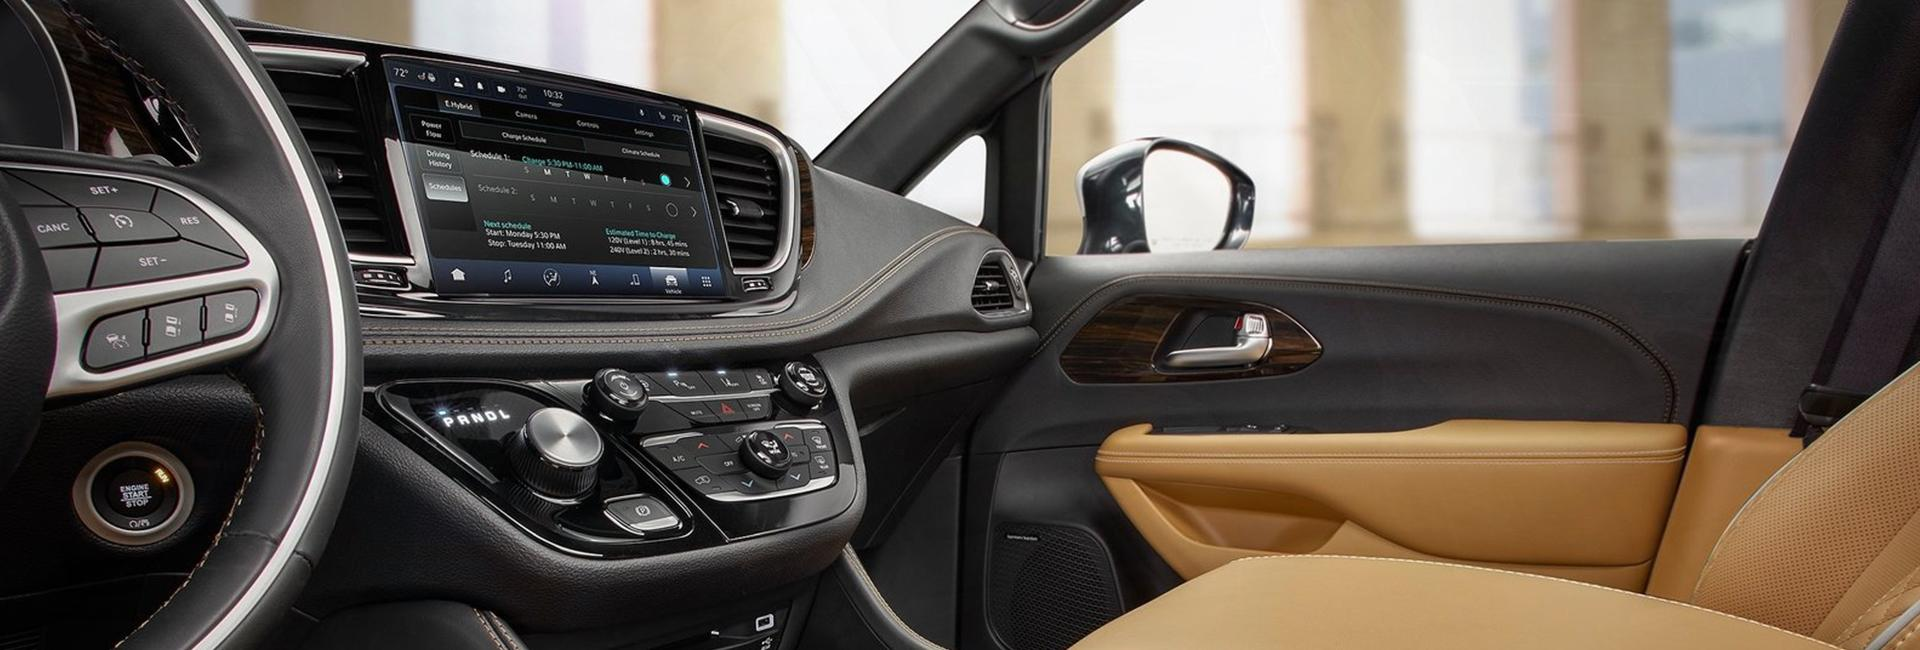 Interior view of the front passenger seat of the 2021 Pacifica